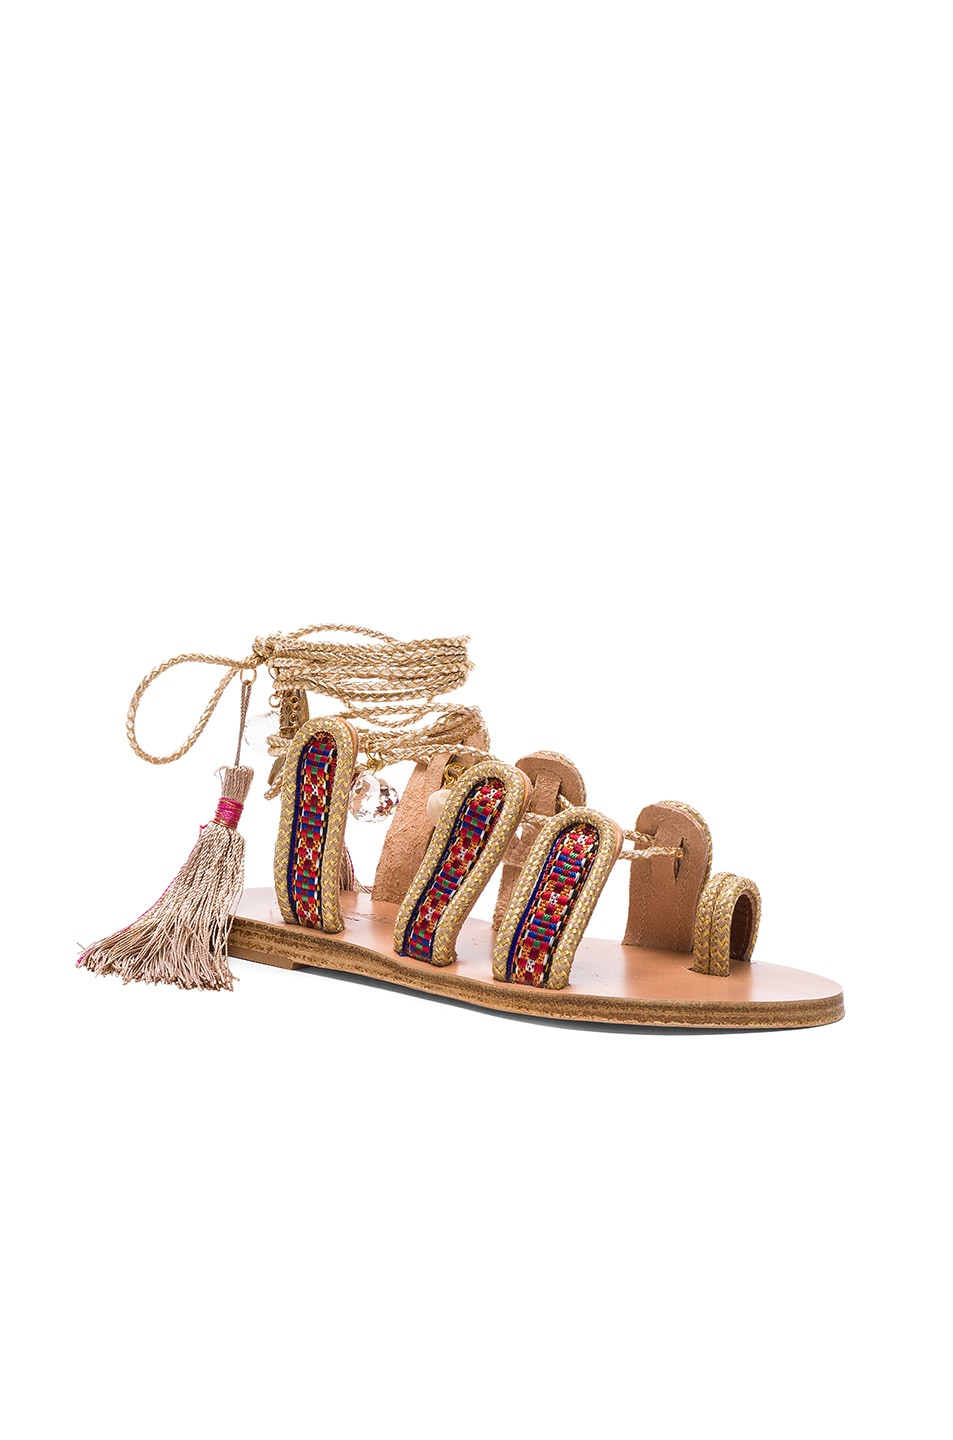 Image 3 of Elina Linardaki The Great Gatsby Sandals in Multi